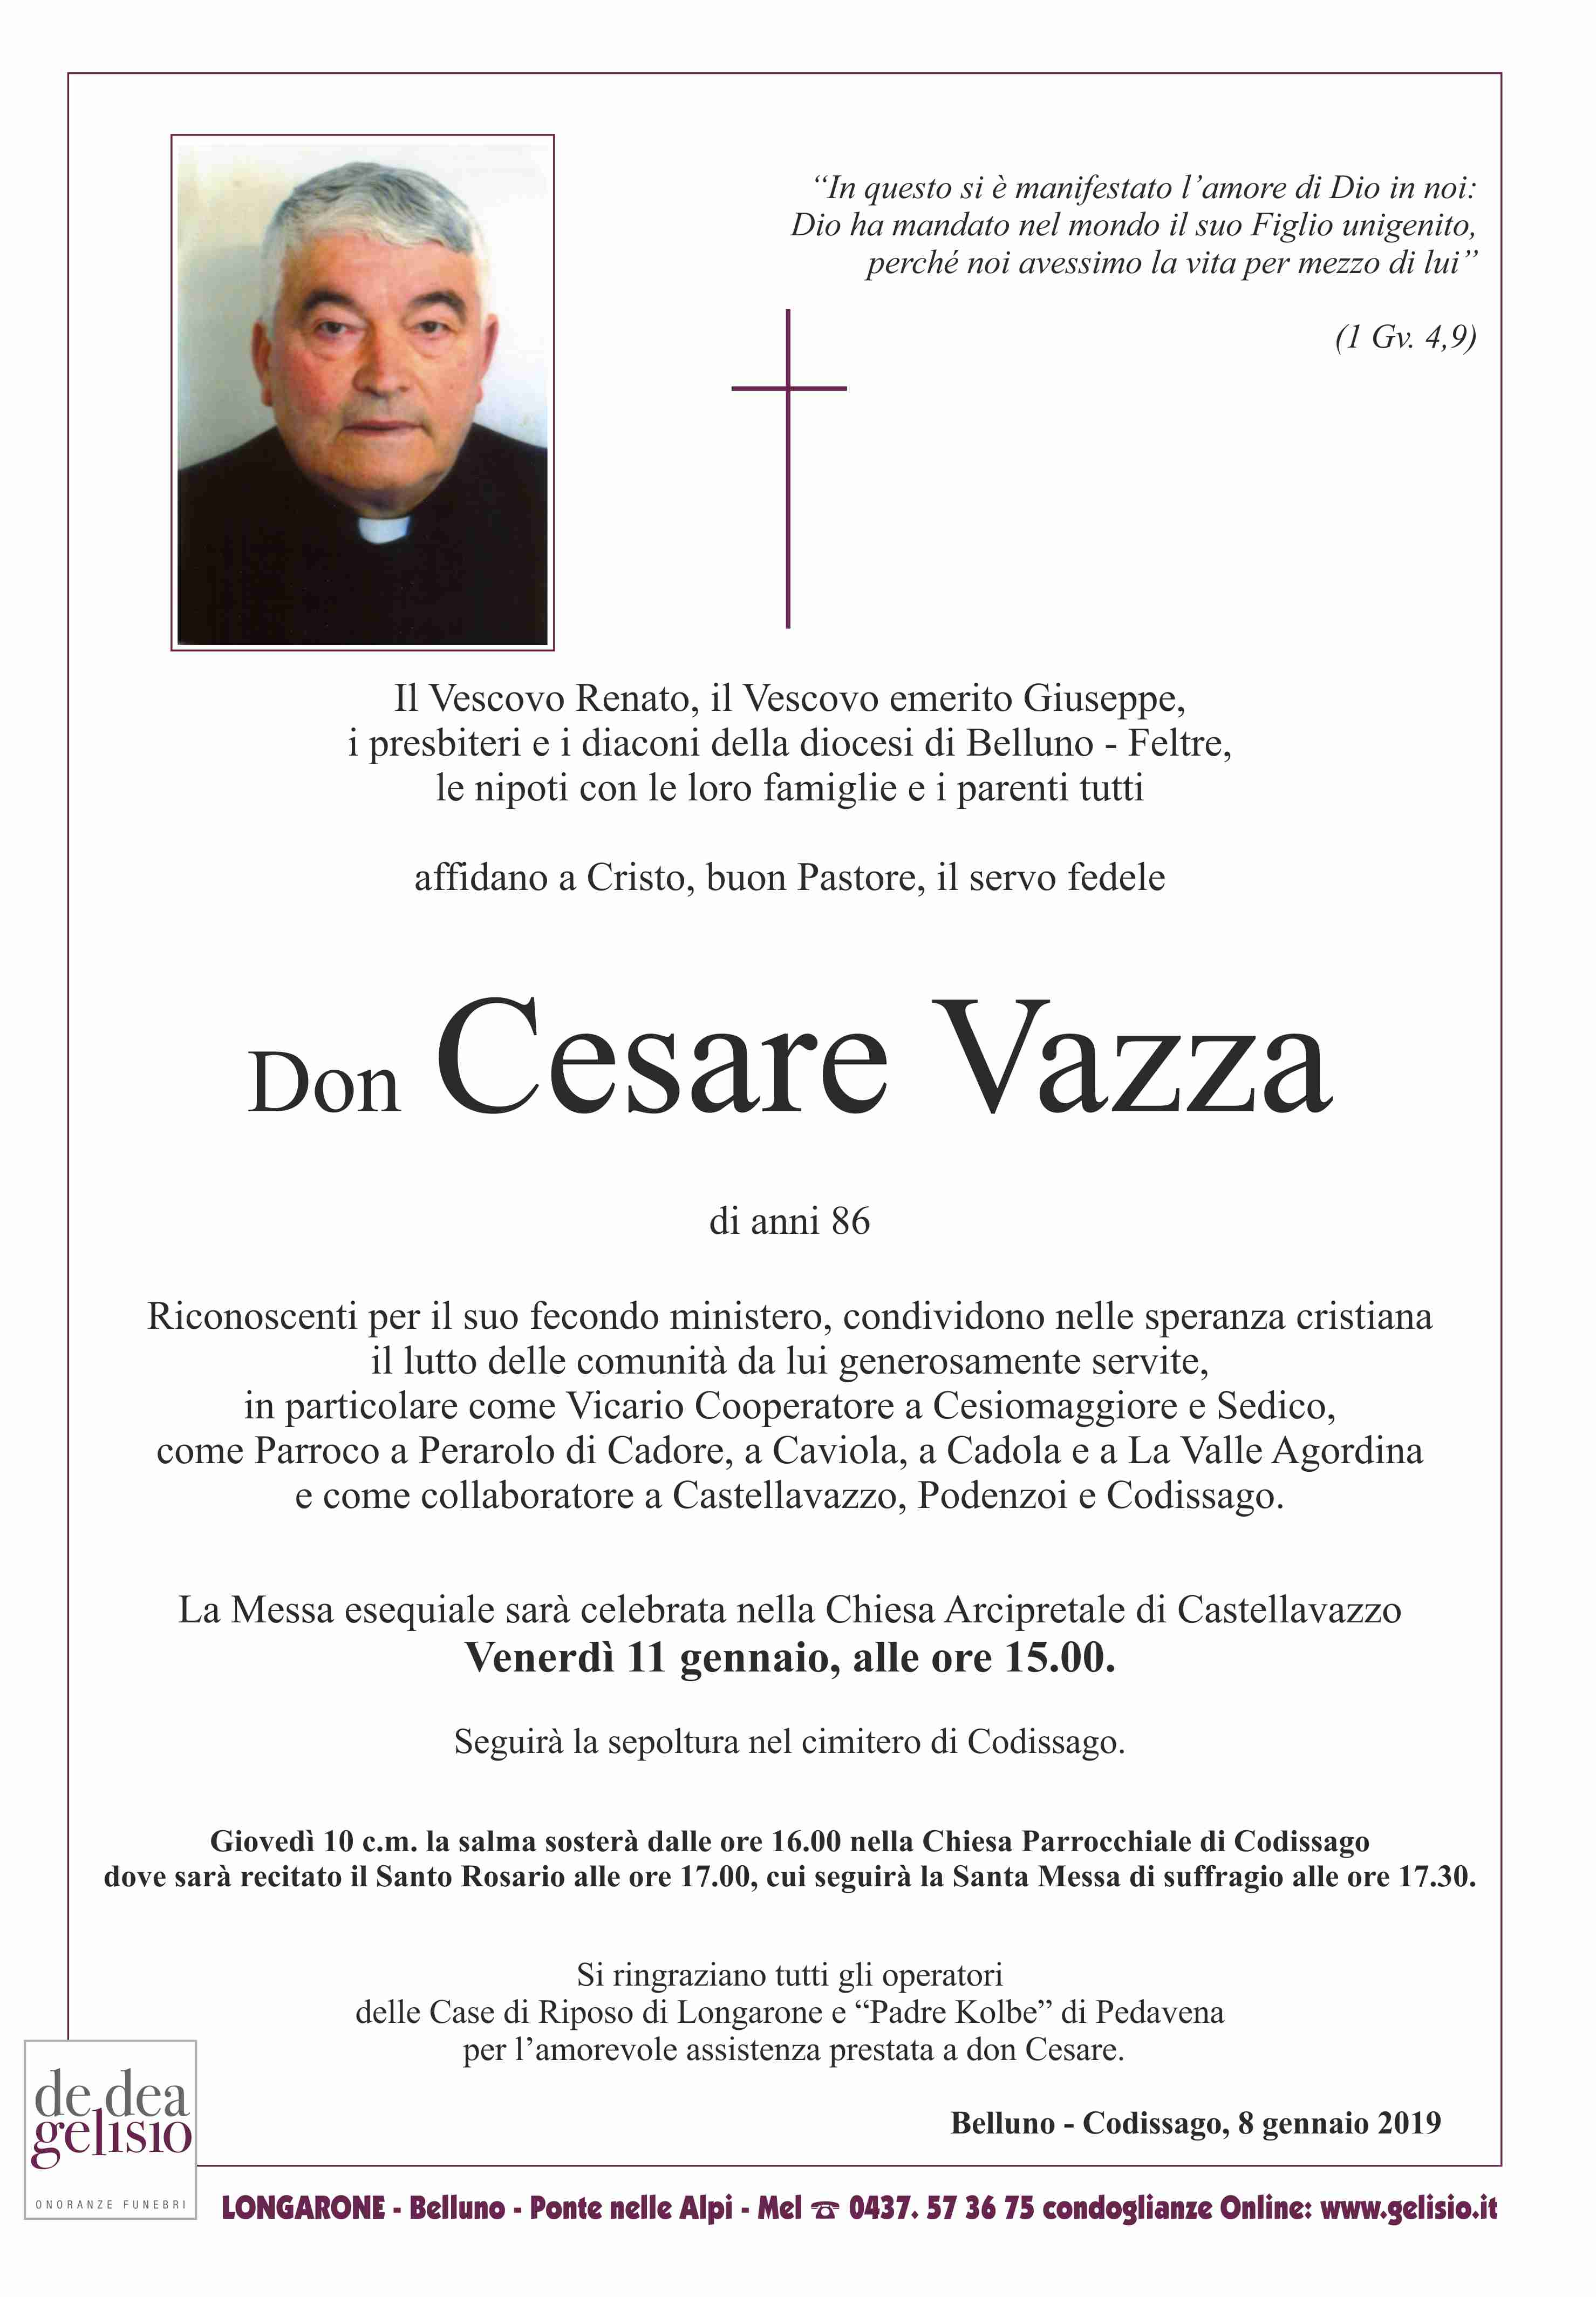 Don Cesare Vazza